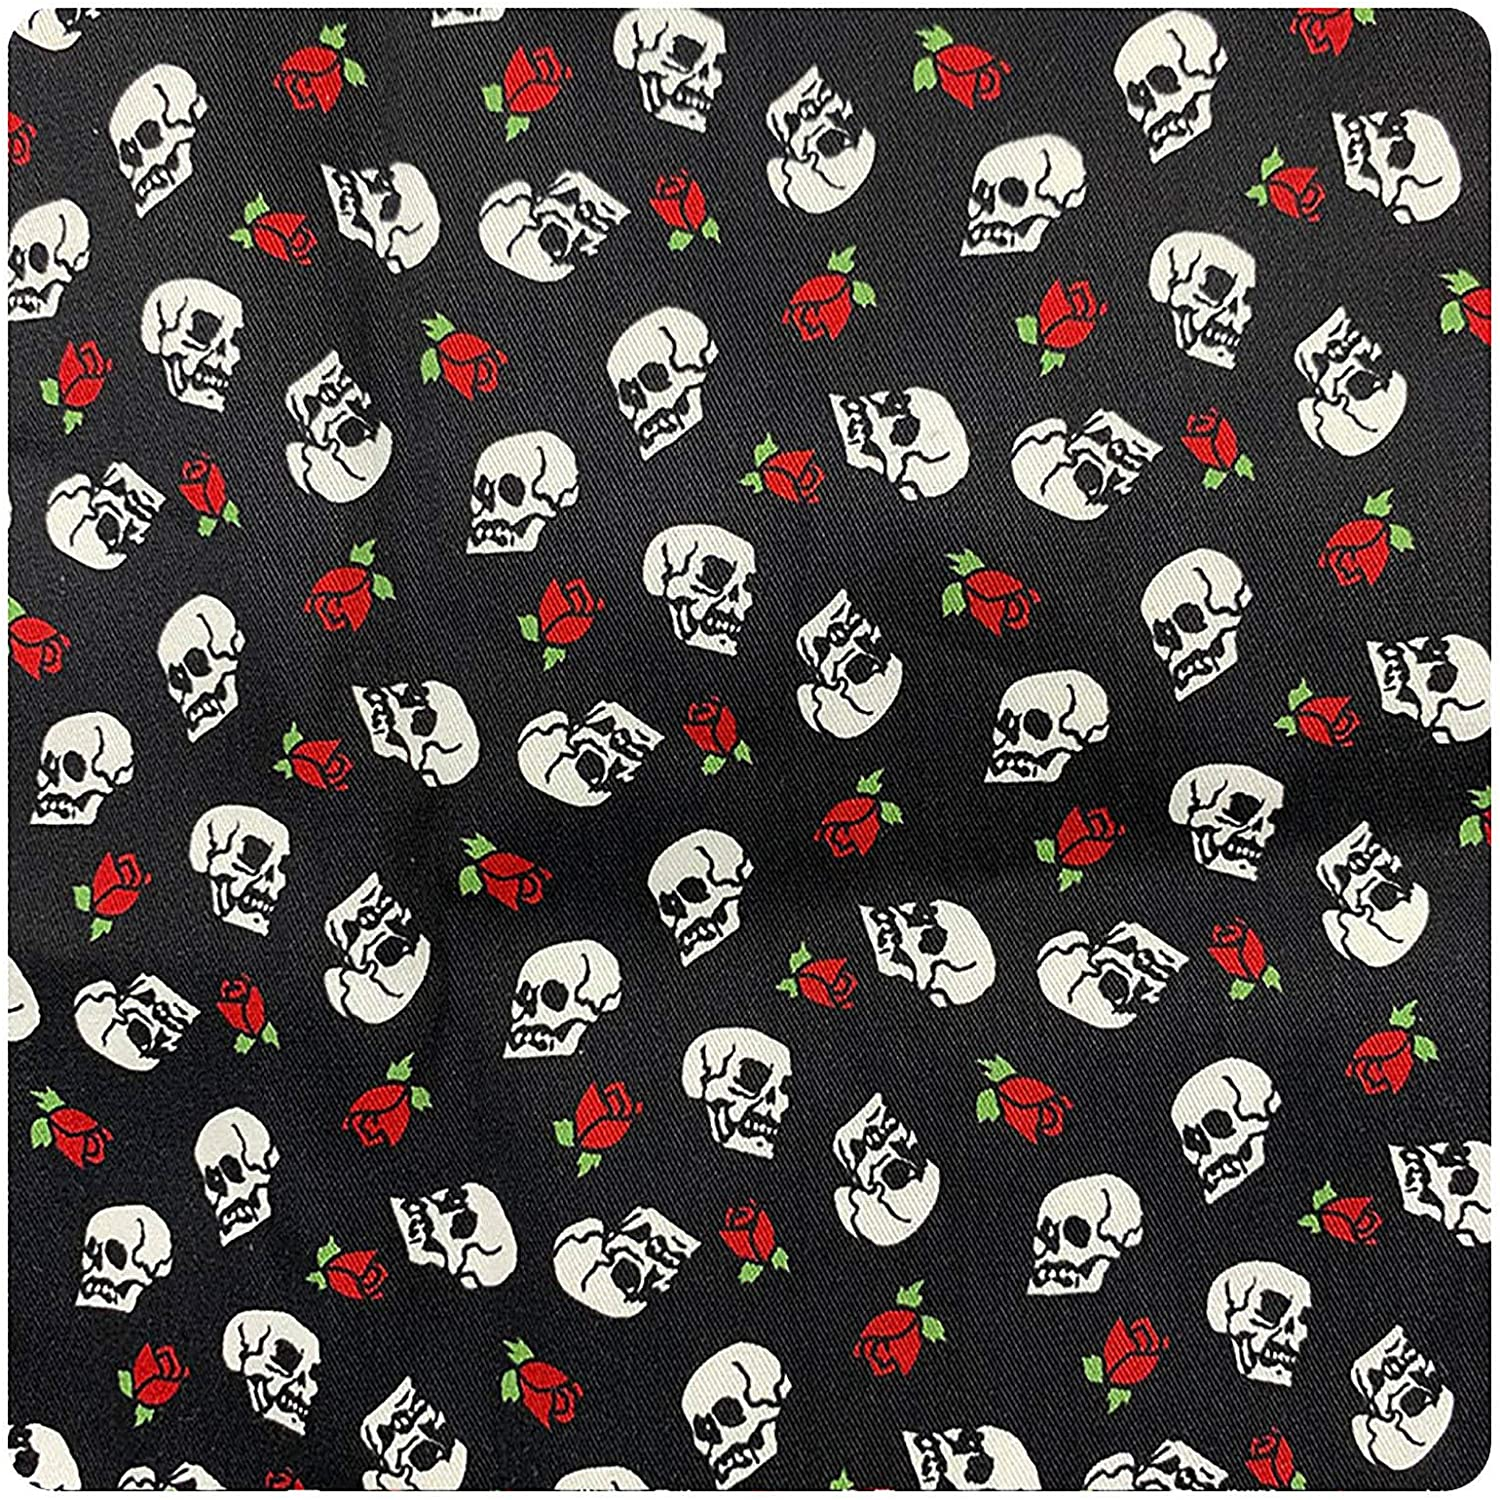 Craft Cotton Fabric Rose Skull Print Fabric for DIY Quilting Sewing Crafting 27.6×19.7in